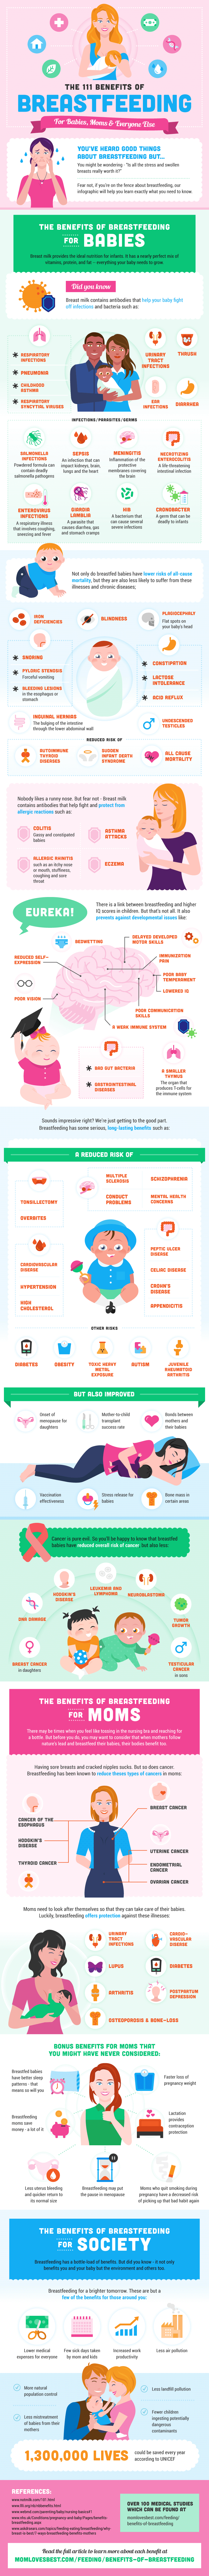 The Benefits Of Breastfeeding Infographic by Mom Loves Best